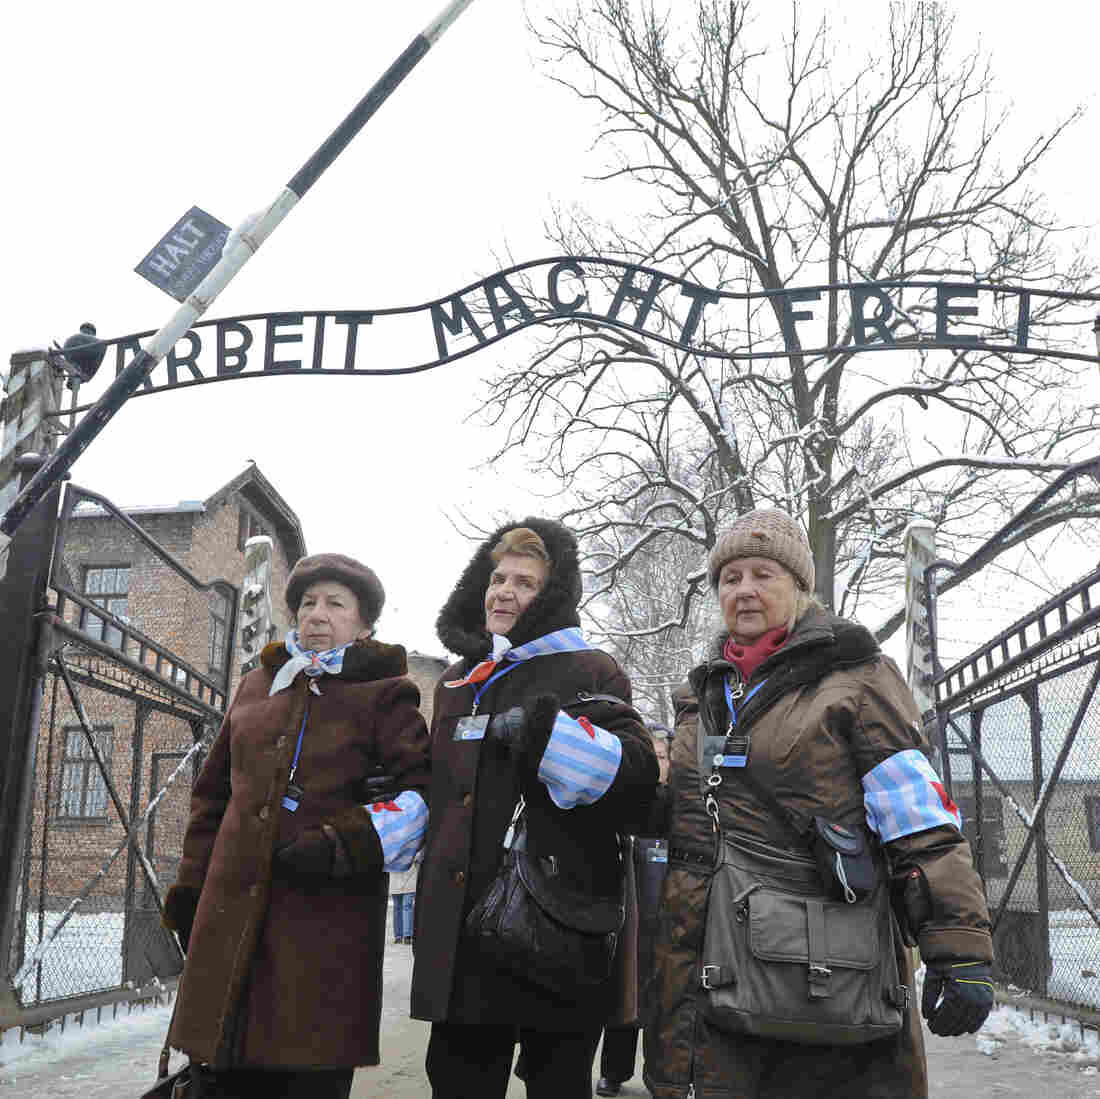 Holocaust survivors walk outside the gate of the of the Auschwitz Nazi death camp in Oswiecim, Poland, on Tuesday.